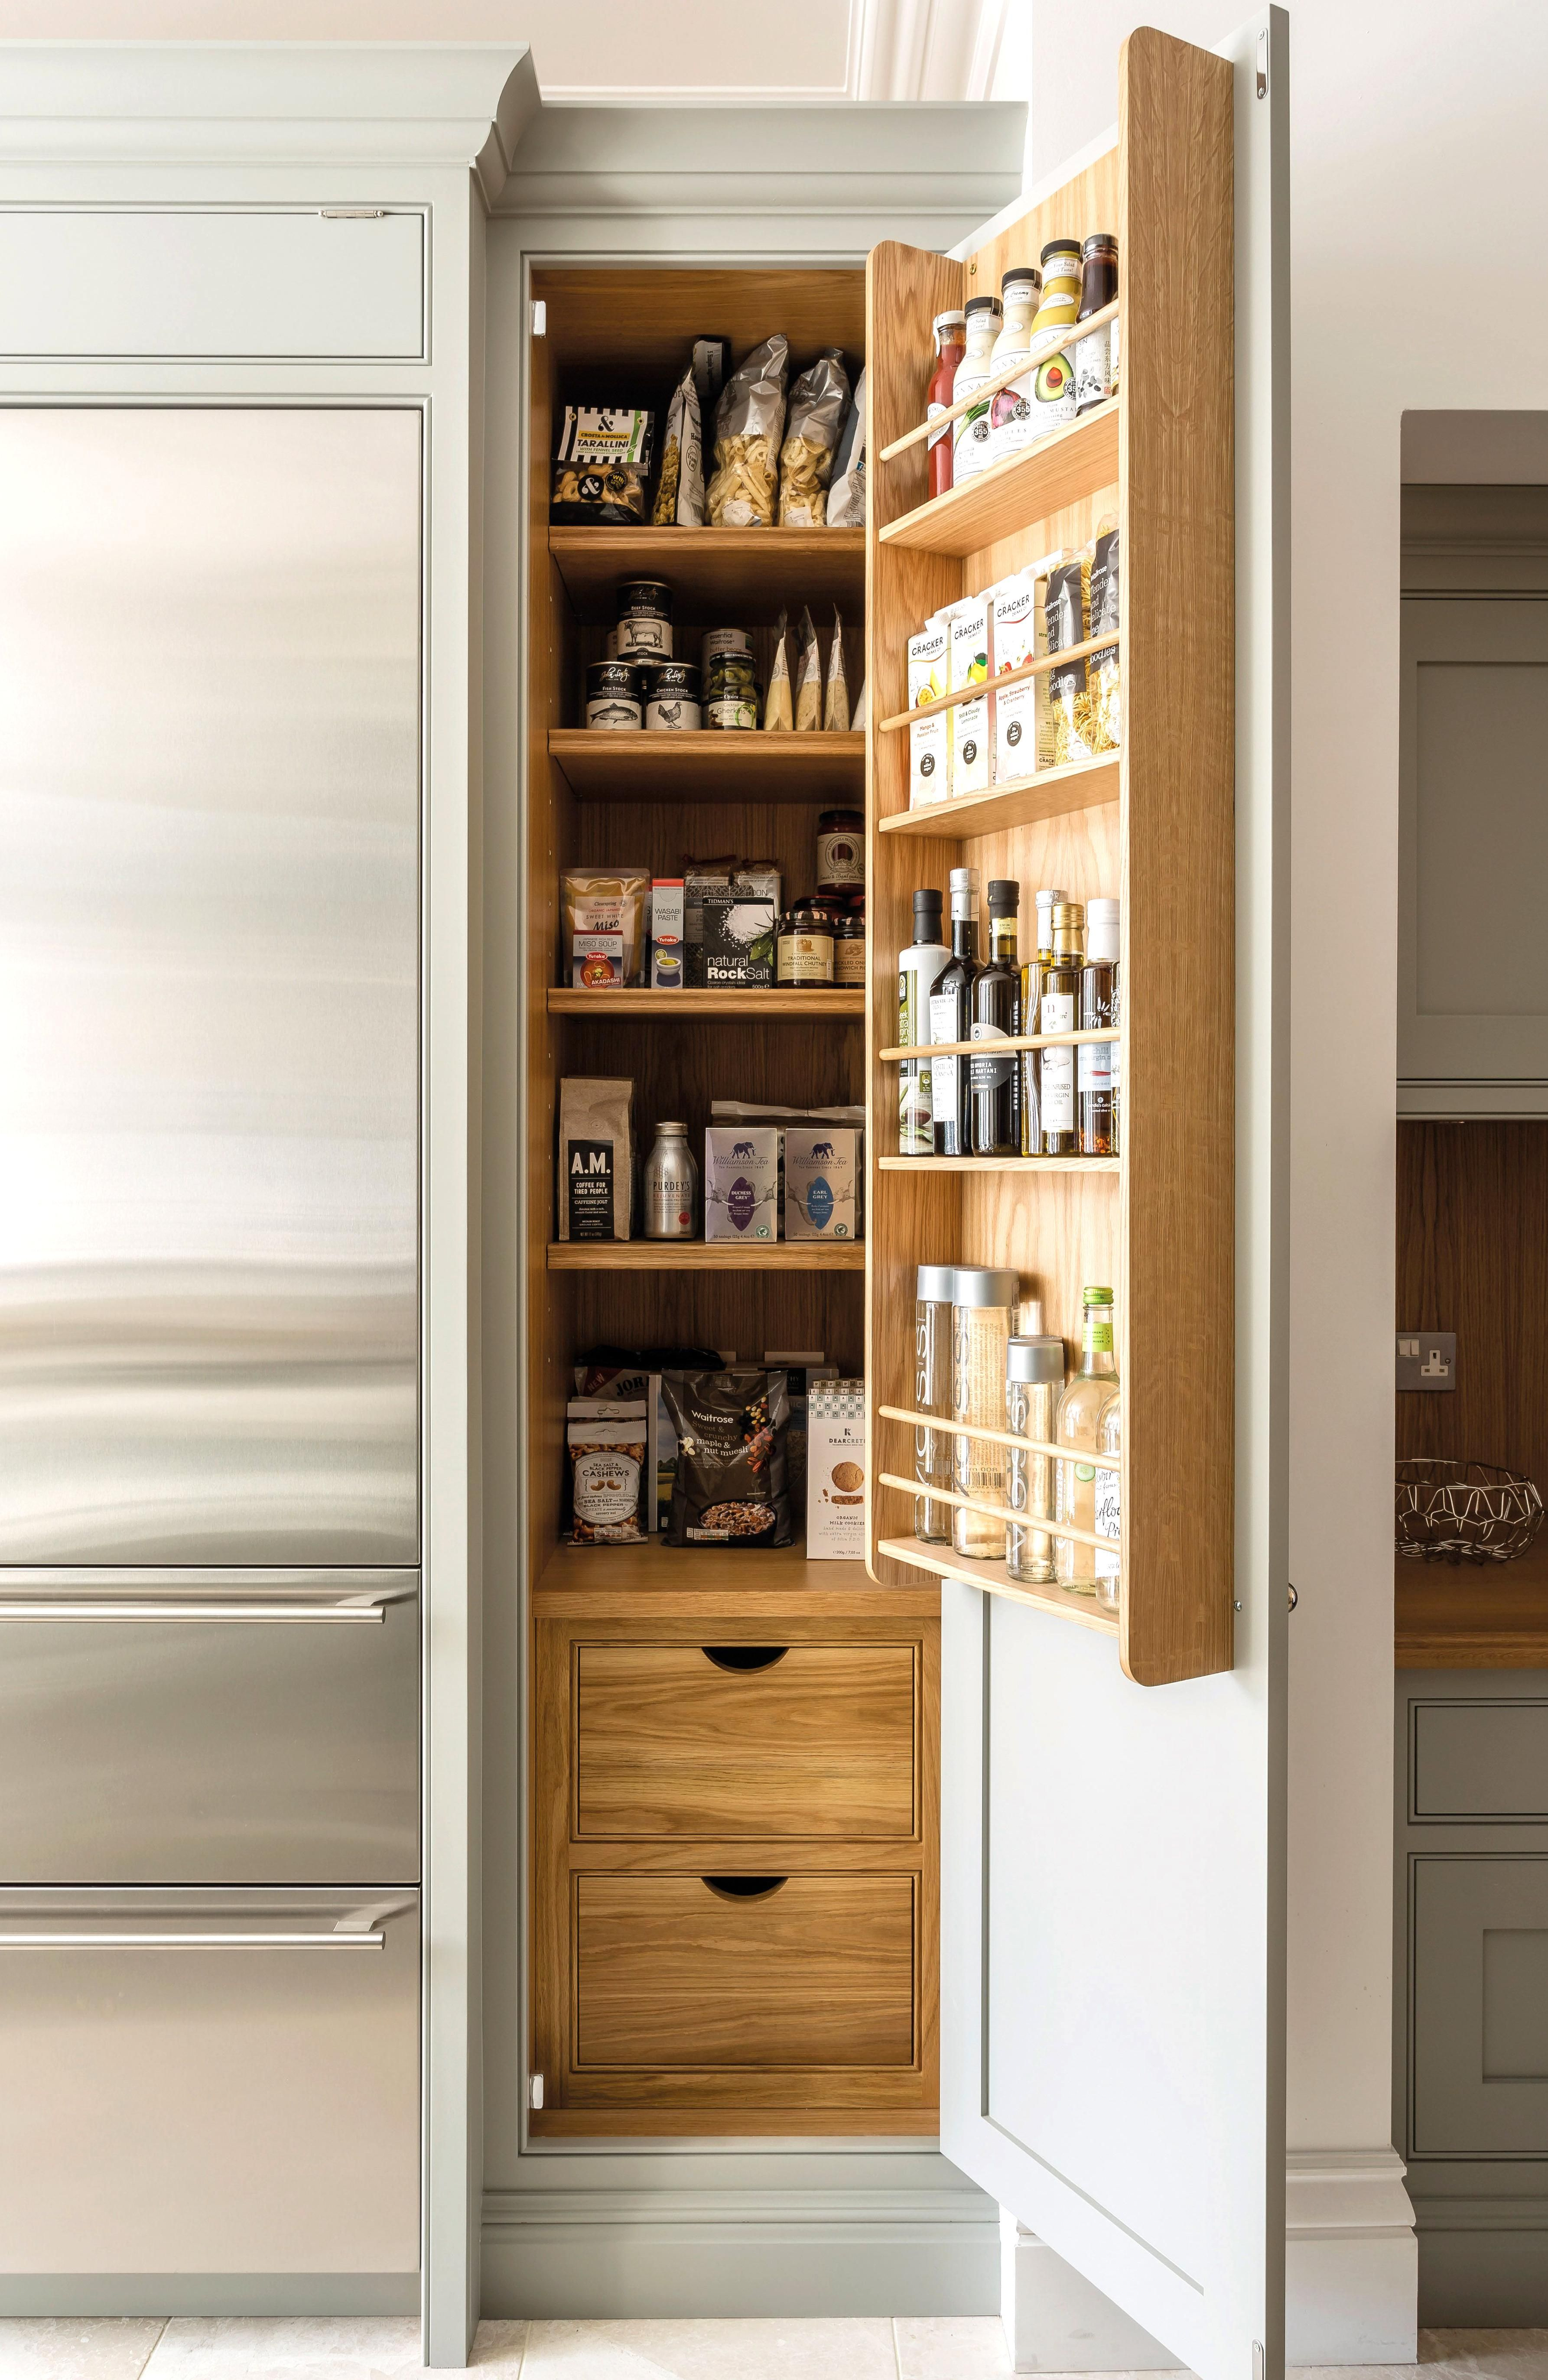 12 Pantry Ideas Larder Cupboard Ideas For Every Kitchen In 2020 Farmhouse Kitchen Tables Pantry Cabinet Kitchen Larder